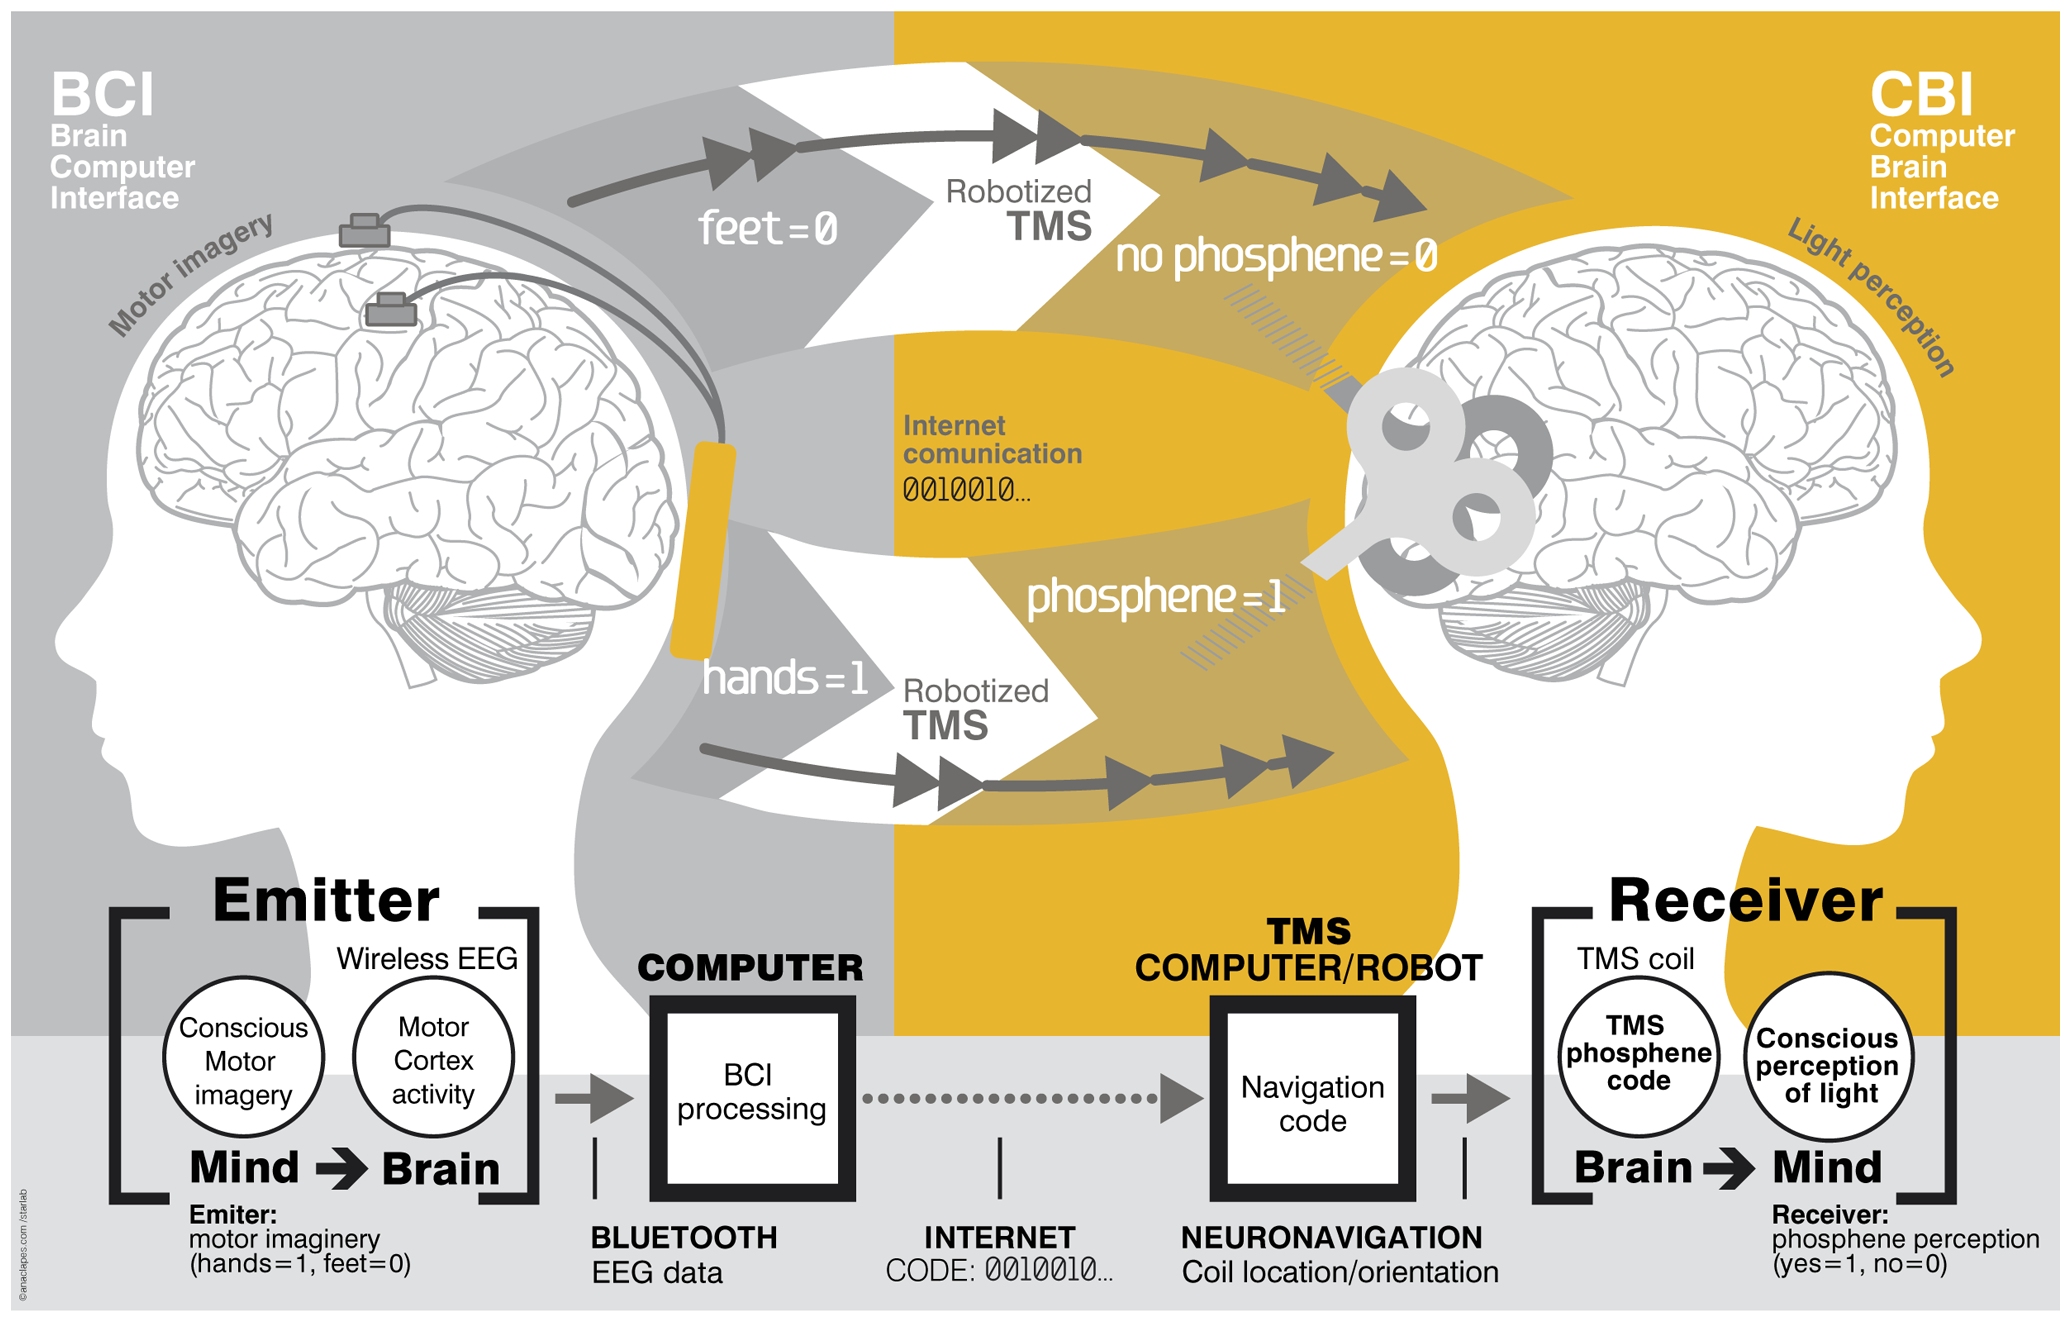 A proposed brain to brain communication model, allowing for yes or no wireless communication between minds.